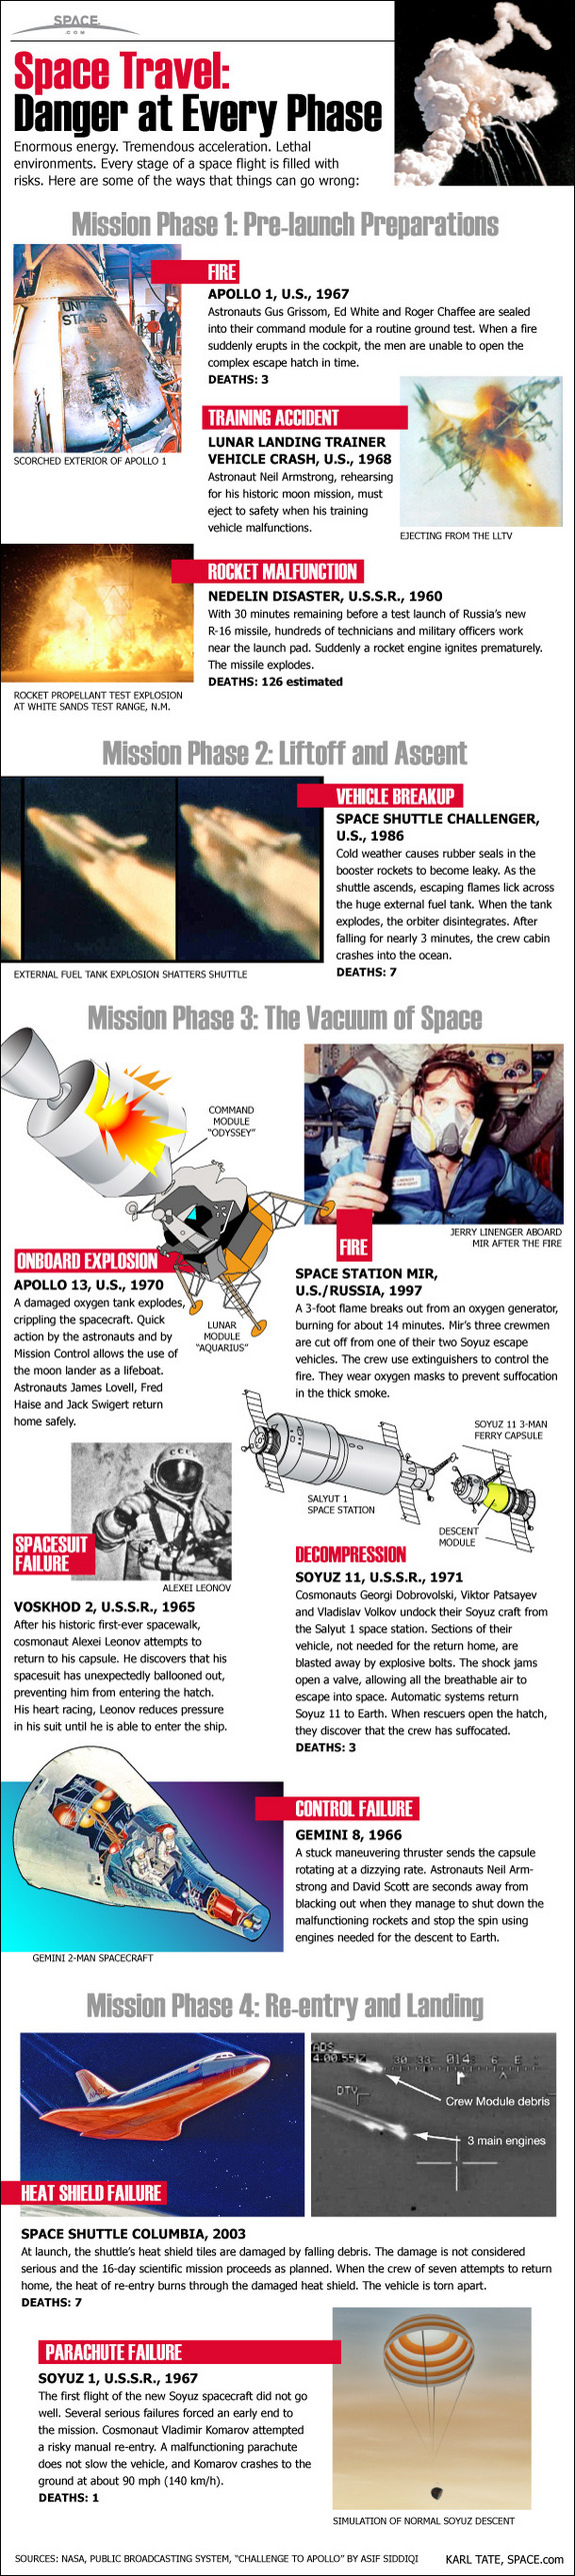 Space is a dangerous place for humans. Learn about the perils of human spaceflight.